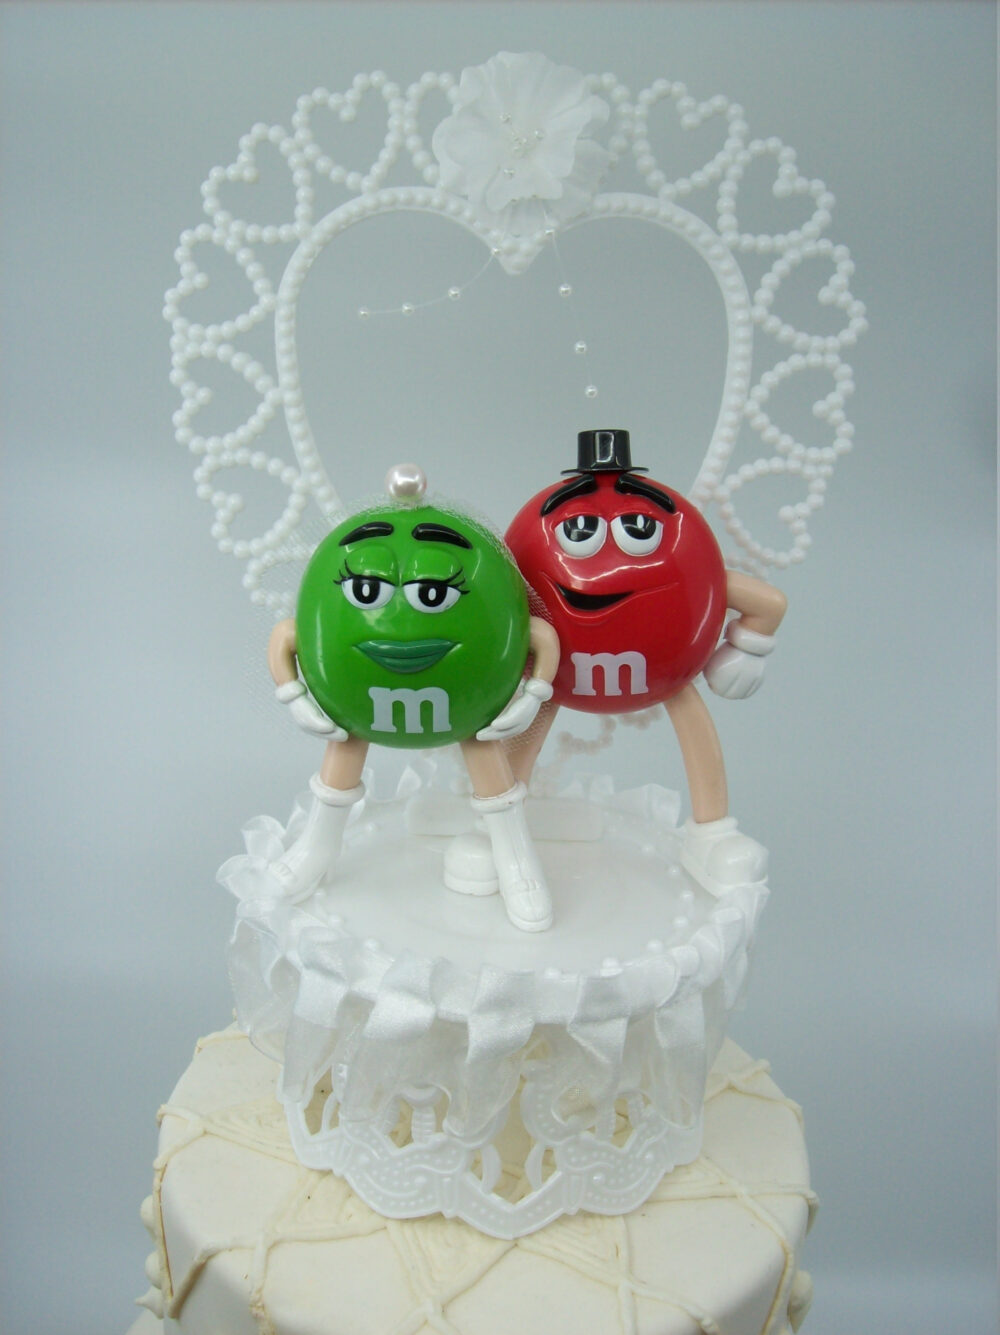 Funny M & Green & Red Bride Groom Wedding Cake Topper Cute Adorable Comics Classic